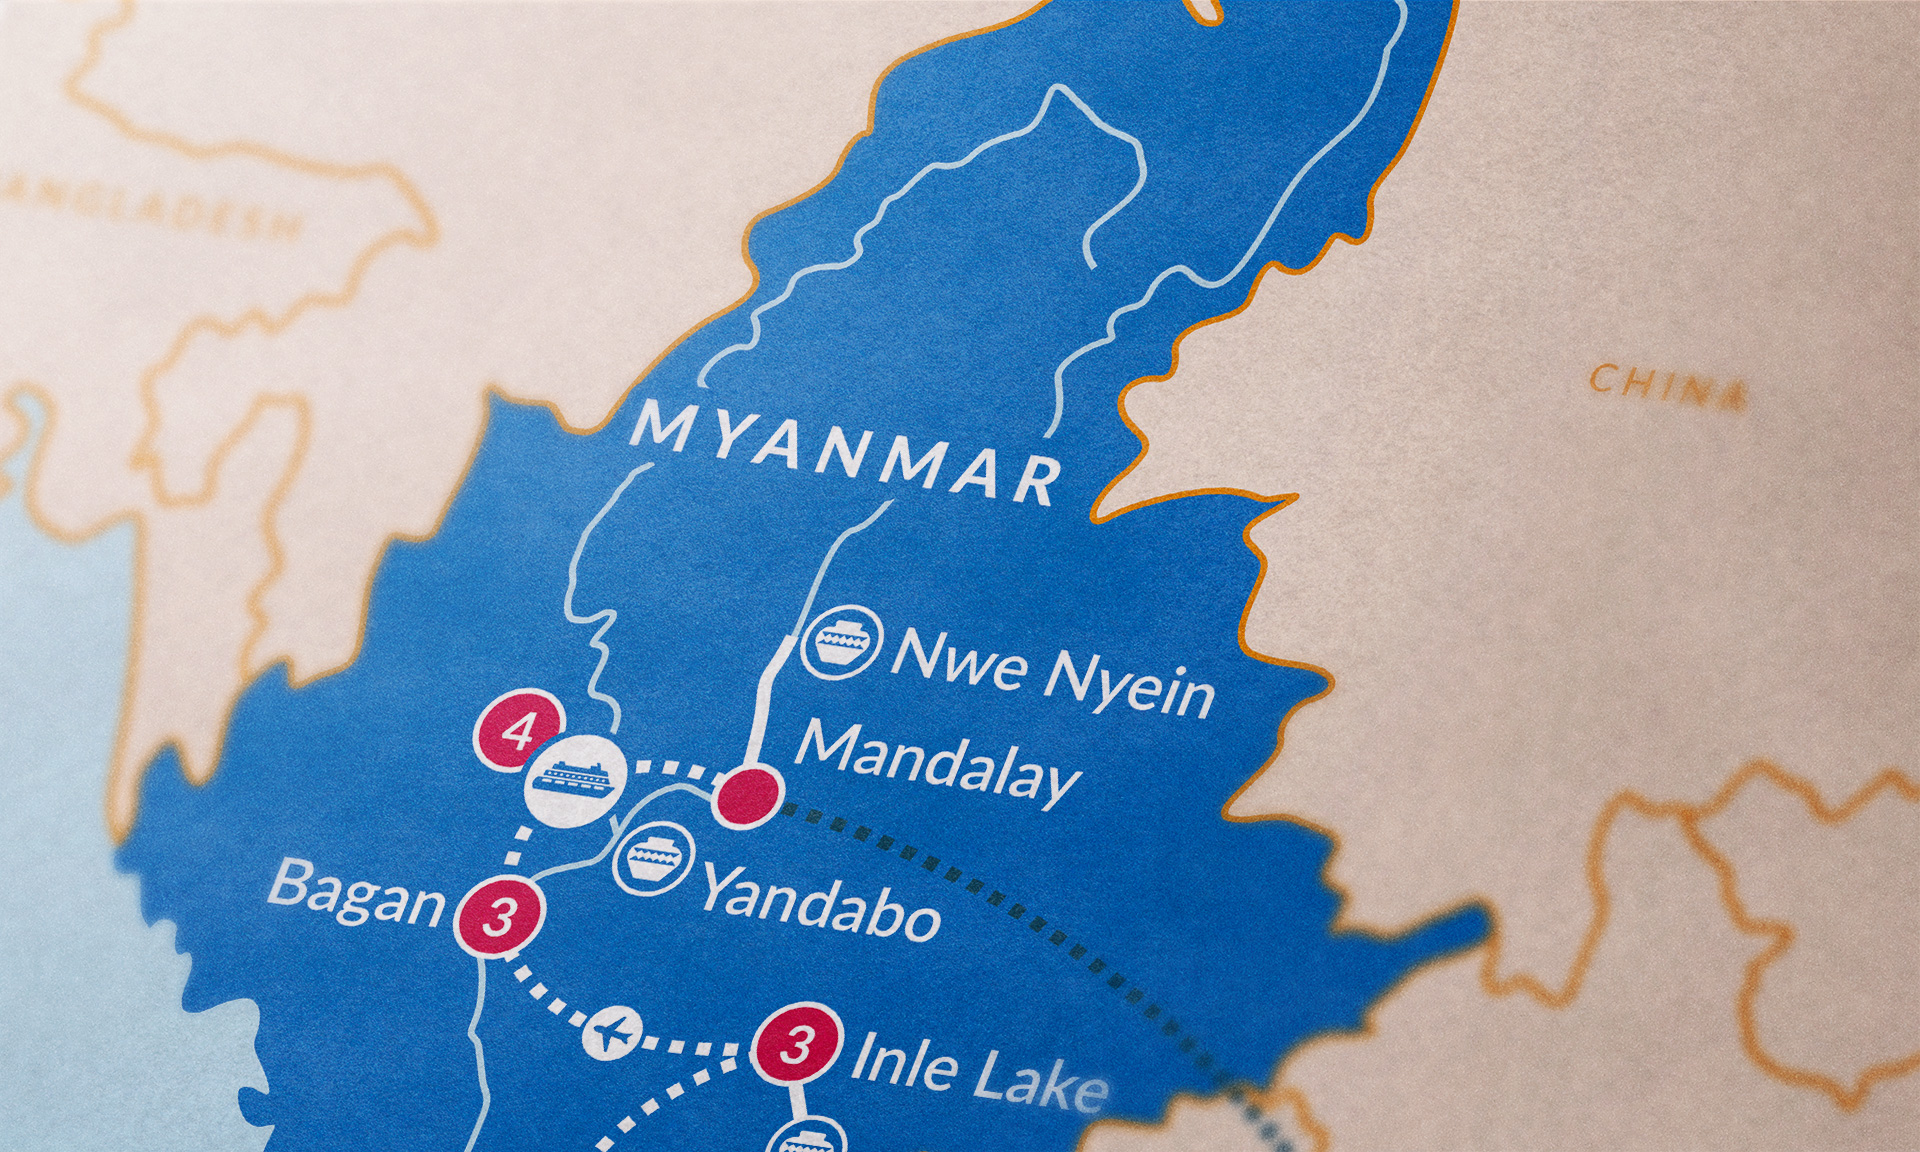 Myanmar map close-up